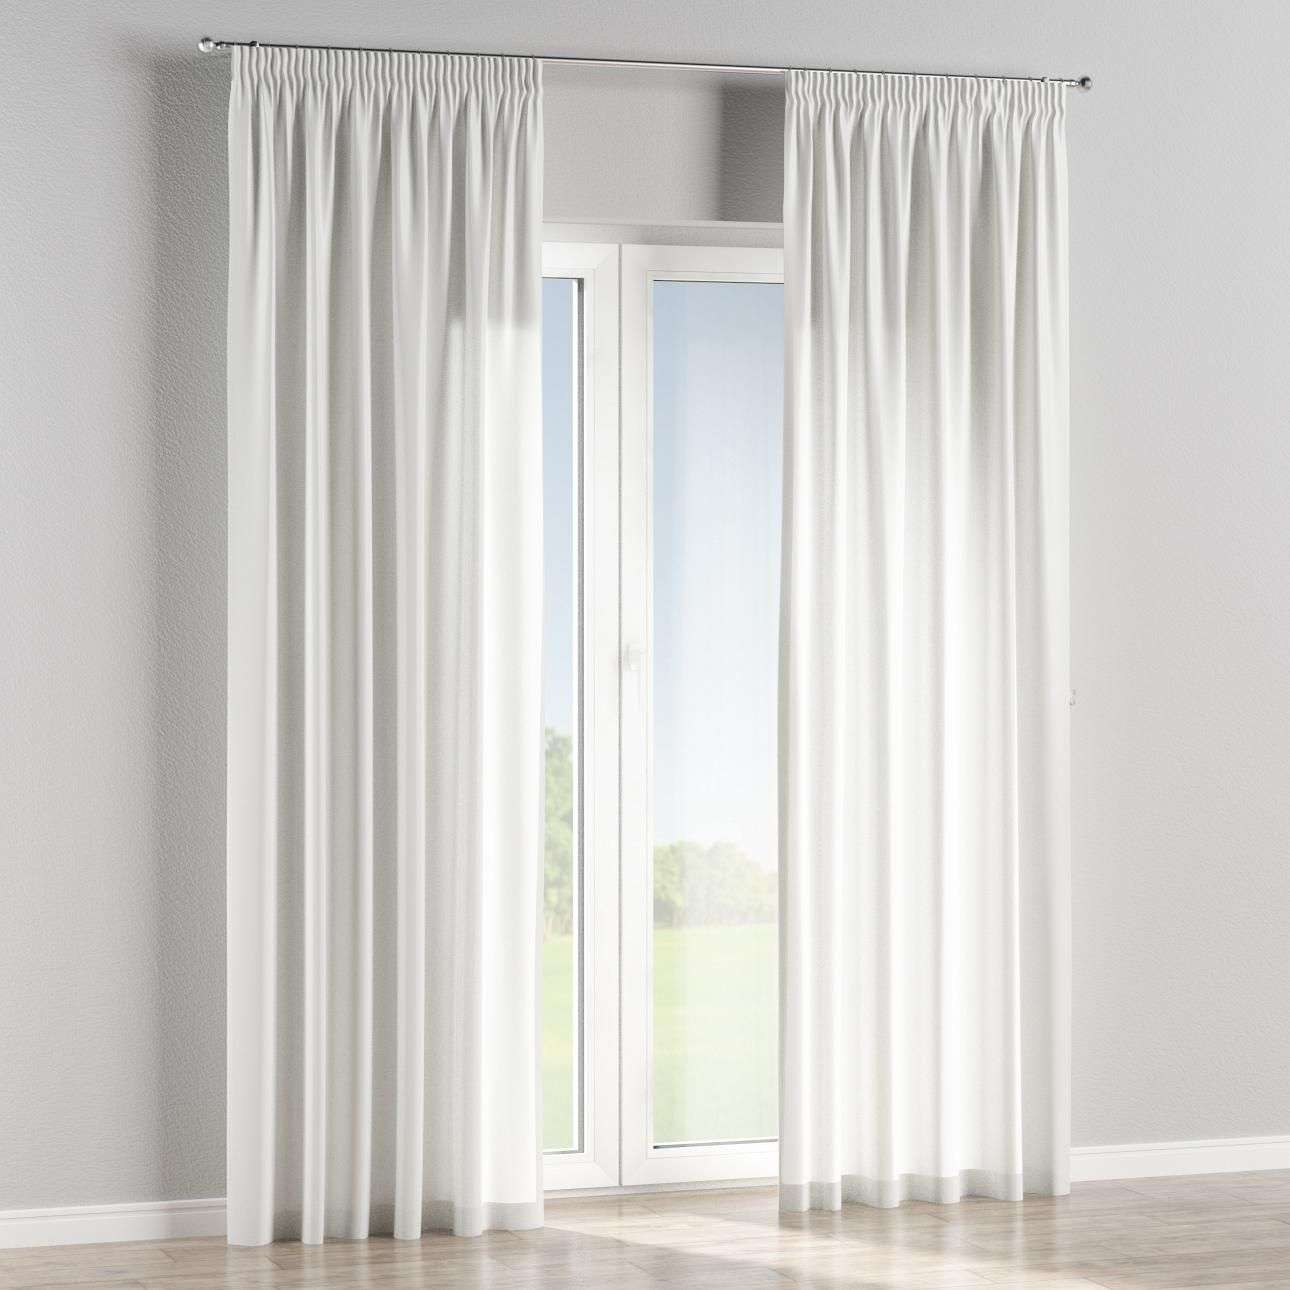 Pencil pleat curtains in collection Arcana, fabric: 104-01